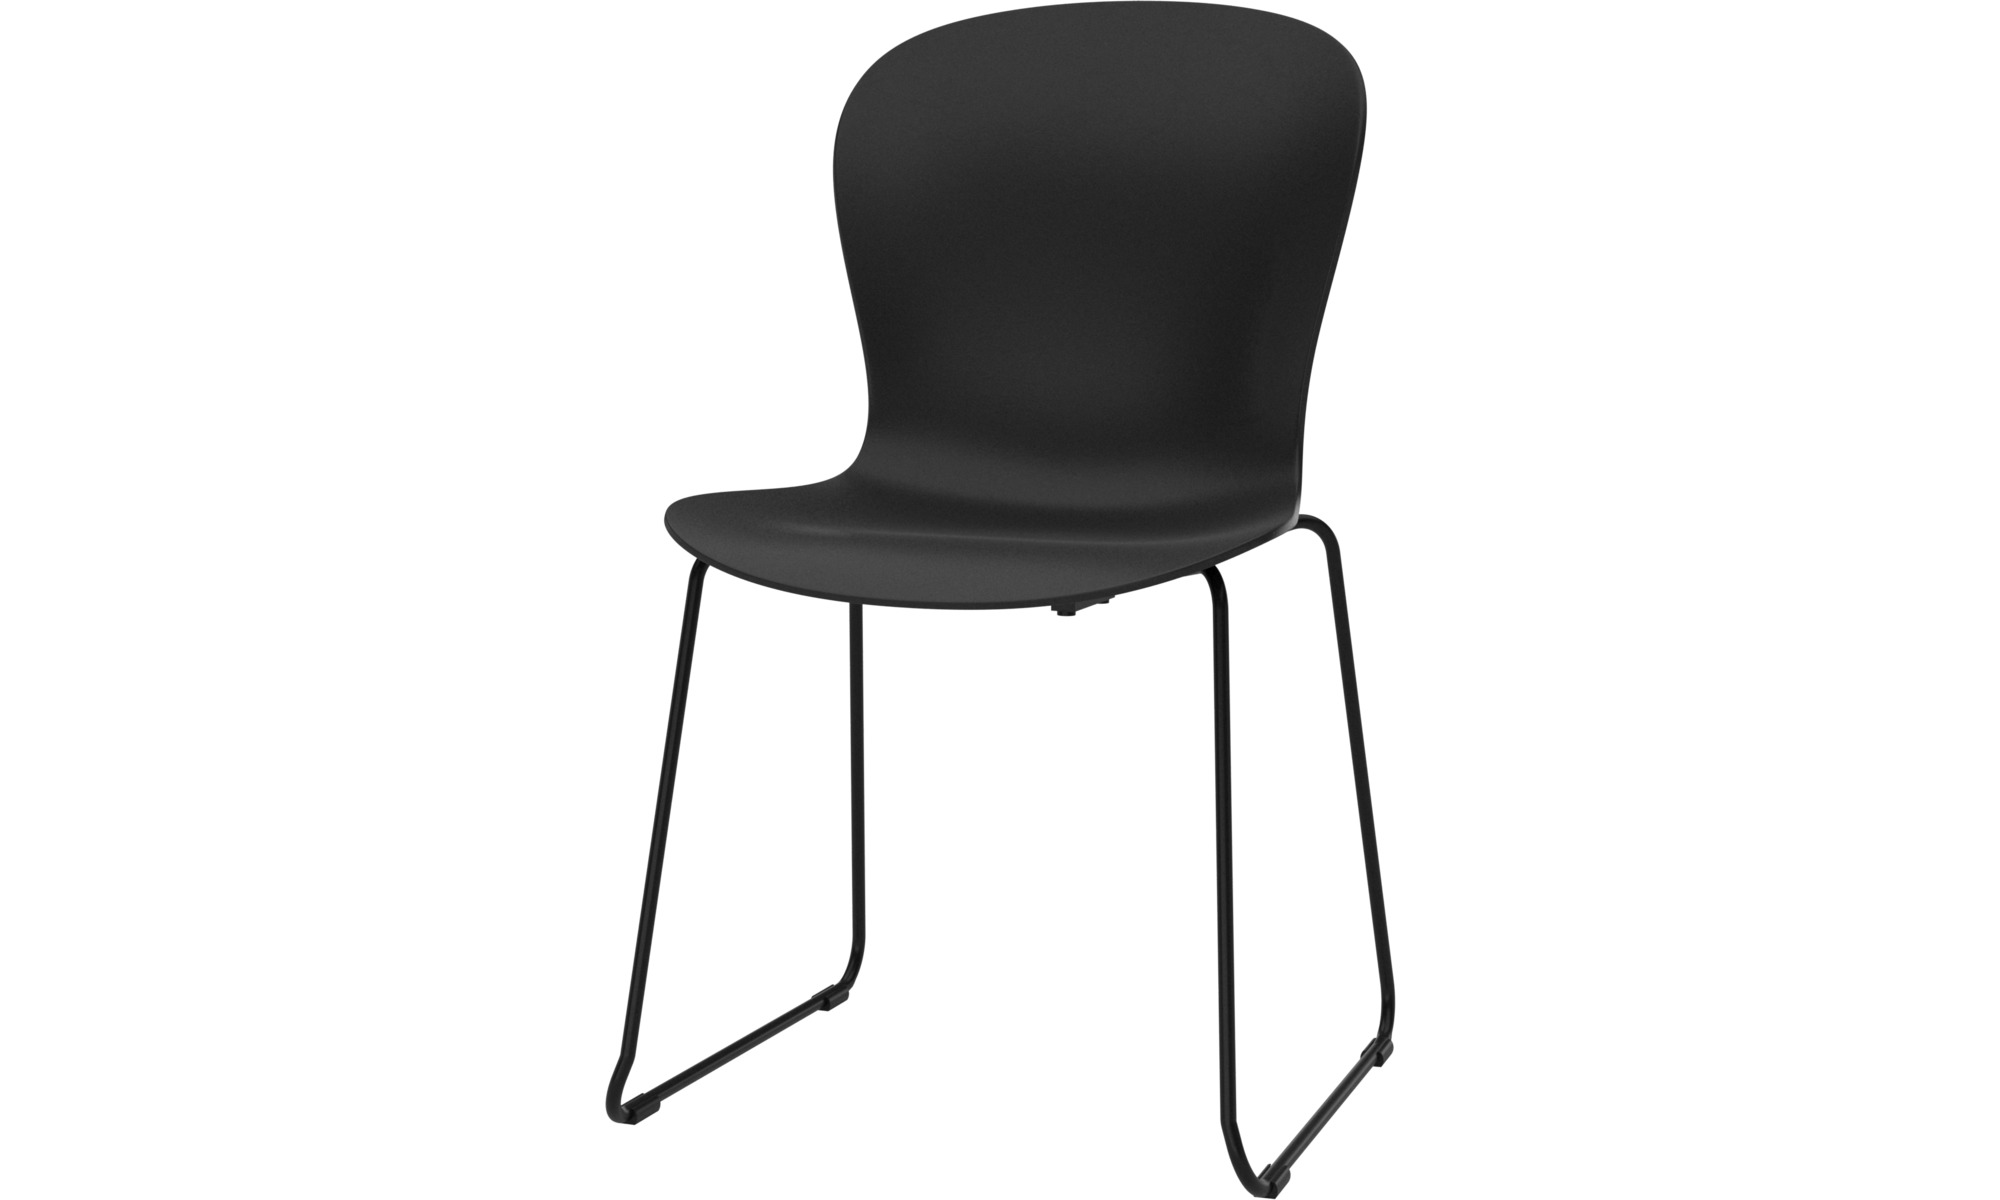 【Chair】Adelaide Chair  4sets 20%off